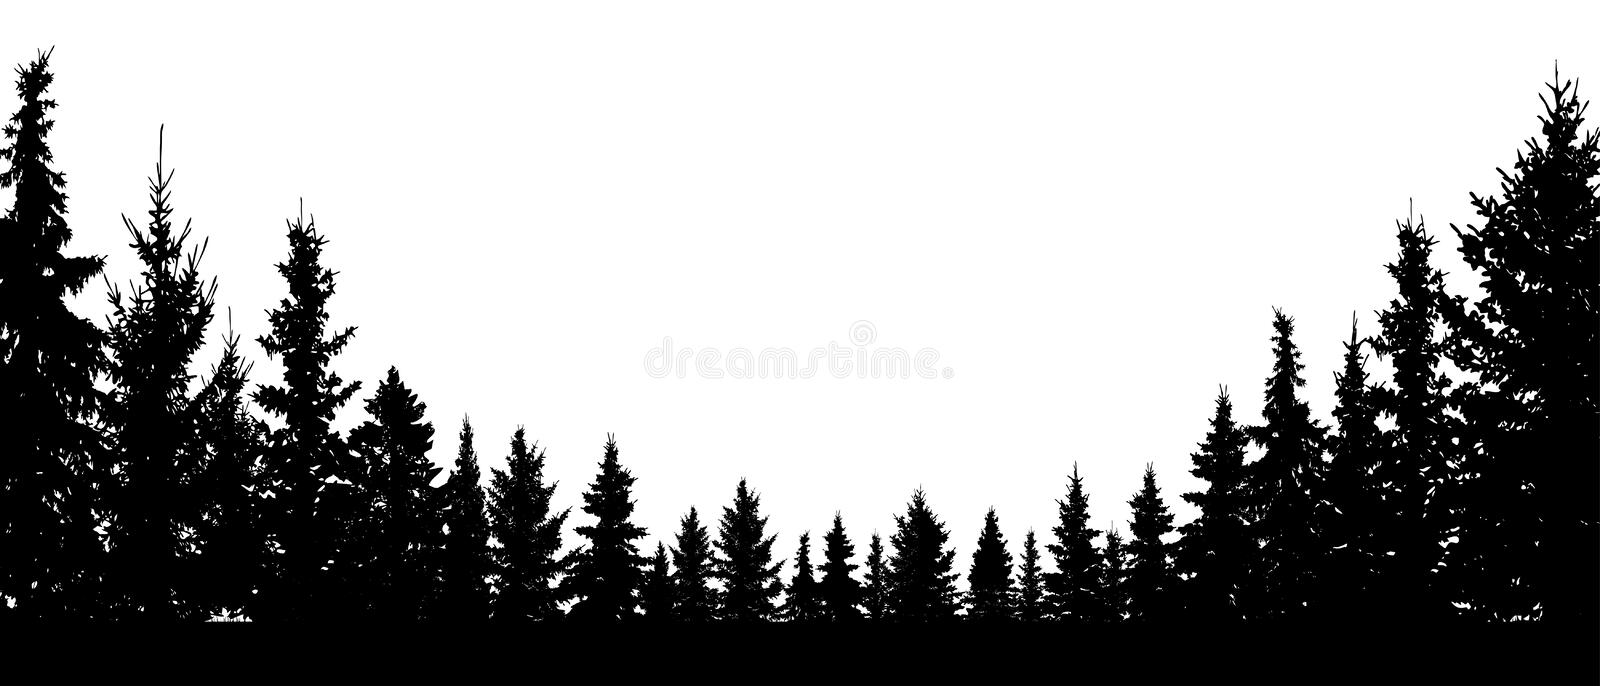 Forest evergreen, coniferous trees, silhouette vector background royalty free illustration